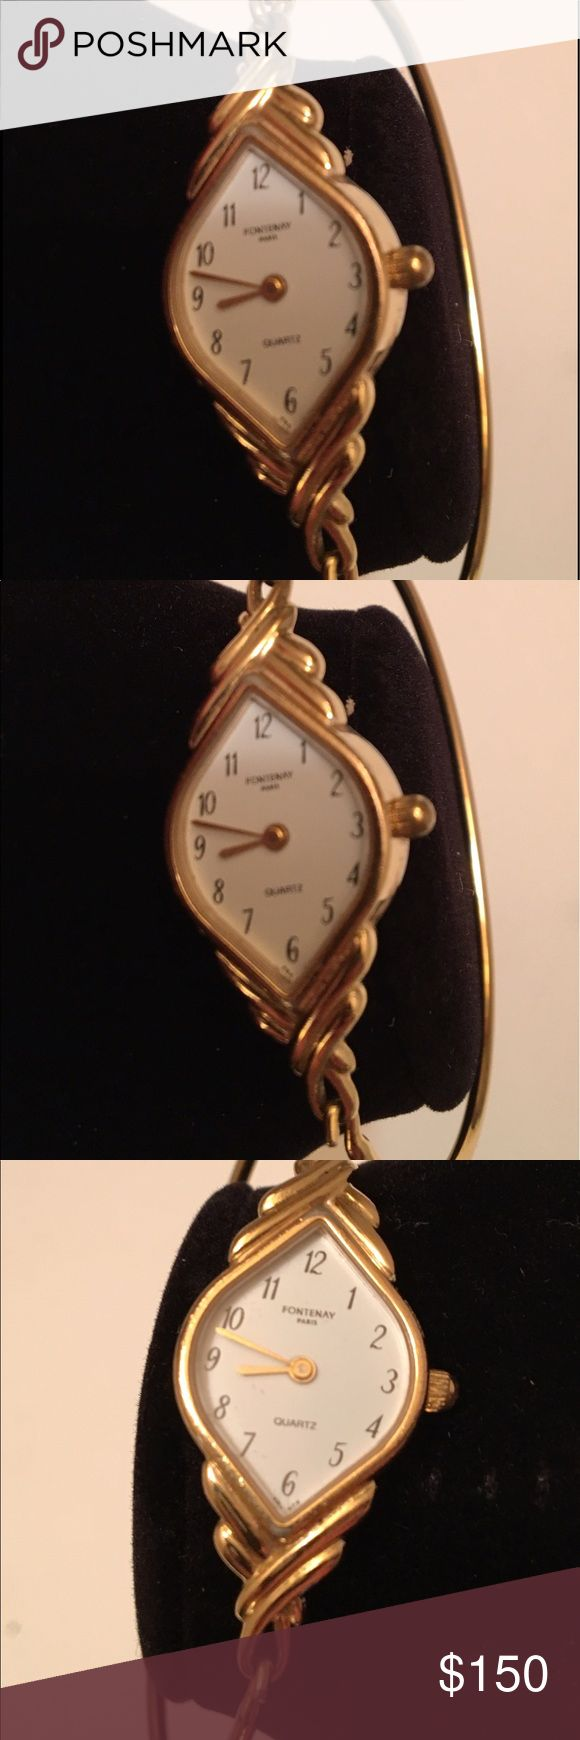 Fontenay wrist watch 18k gold plated vintage Paris Fontenay Wrist watch 18K gold plated pre-owned vintage retails $450 good condition needs battery Fontenay Accessories Watches